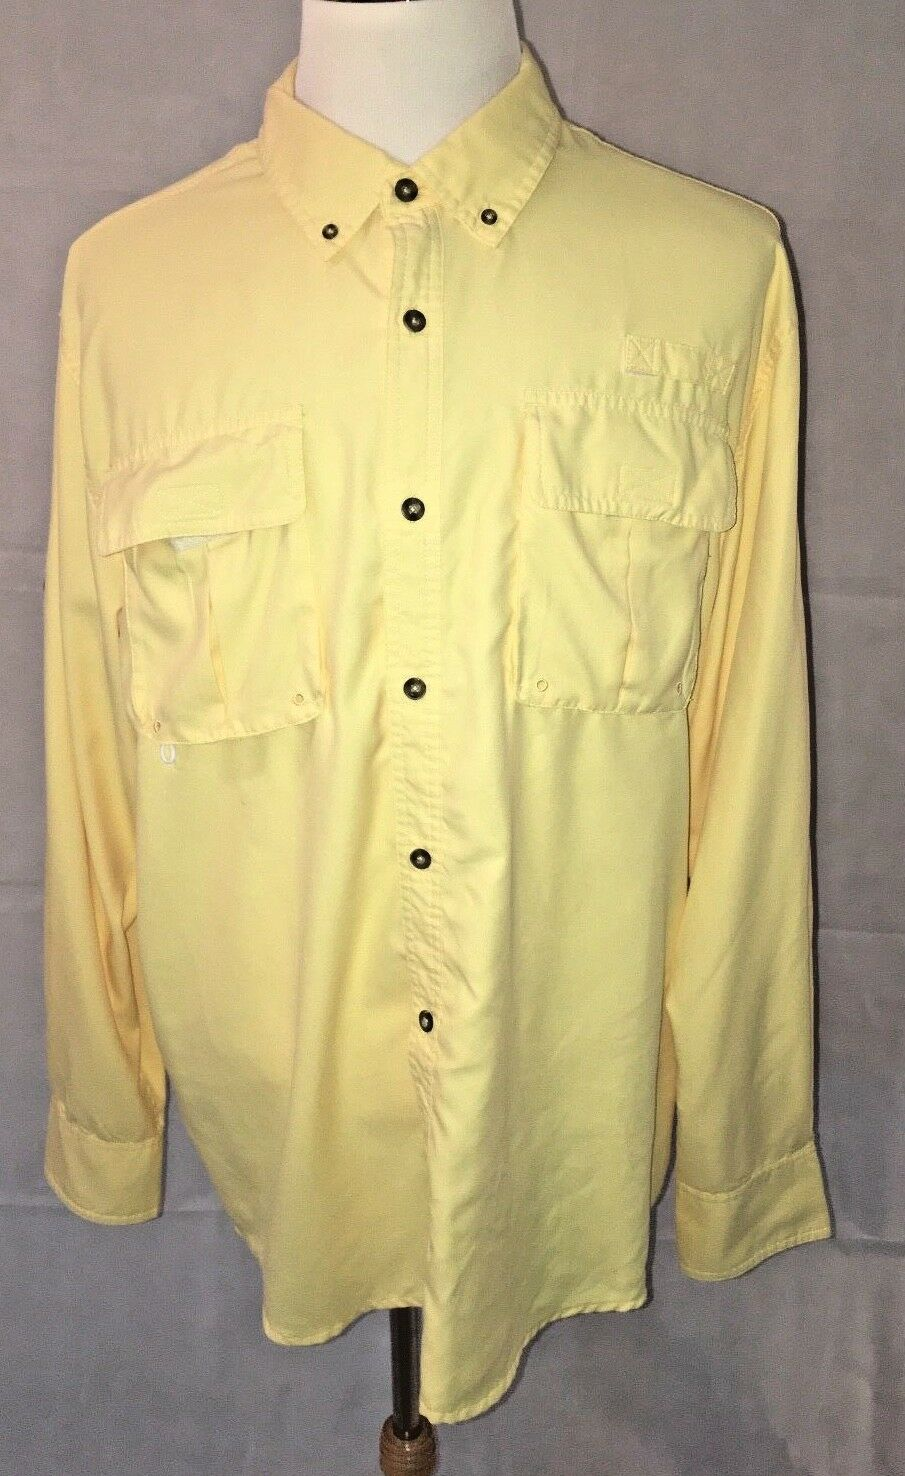 Cabela's Men's Shirt 100% Polyester Vented Fishing Hiking Outdoors Size XL